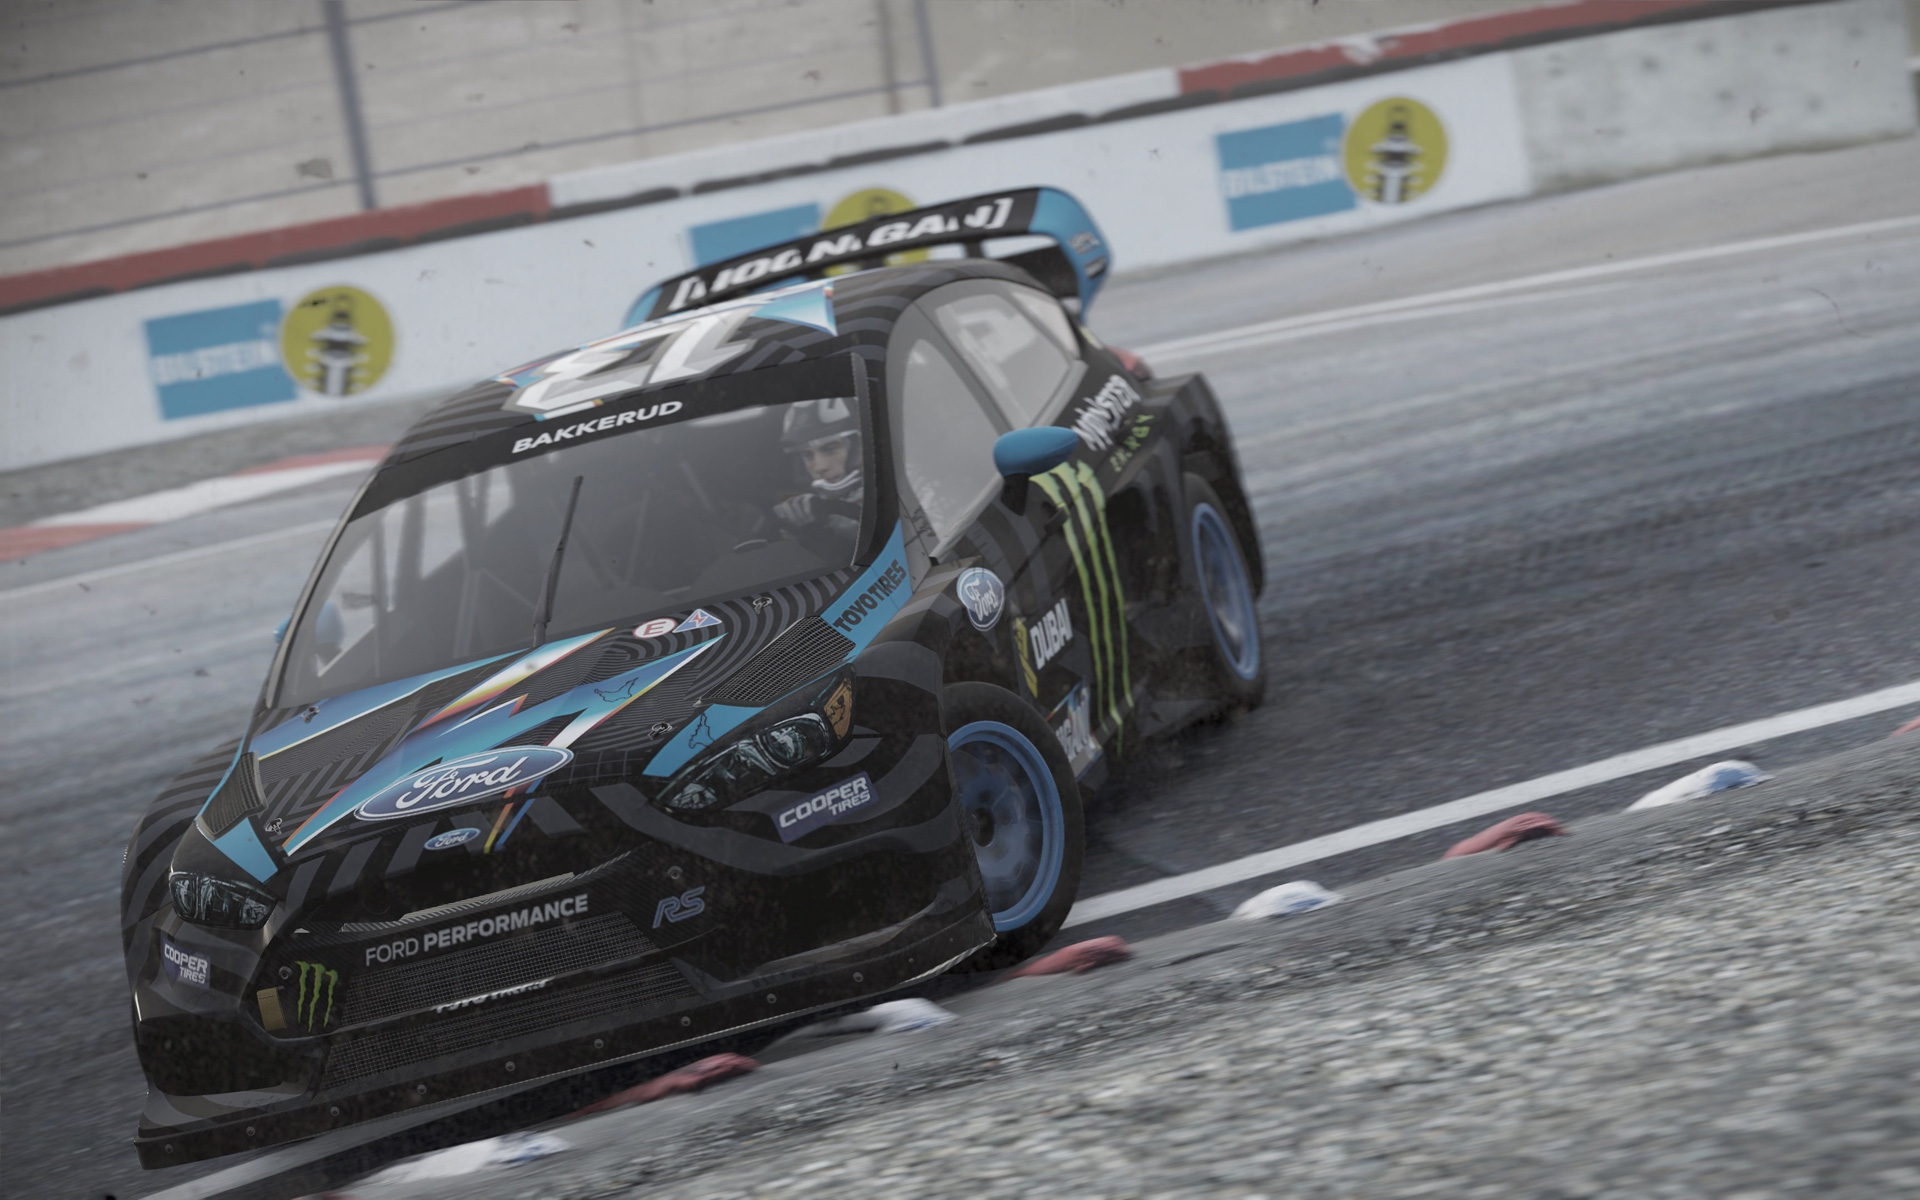 Free Project Cars 2 Wallpaper in 1920x1200